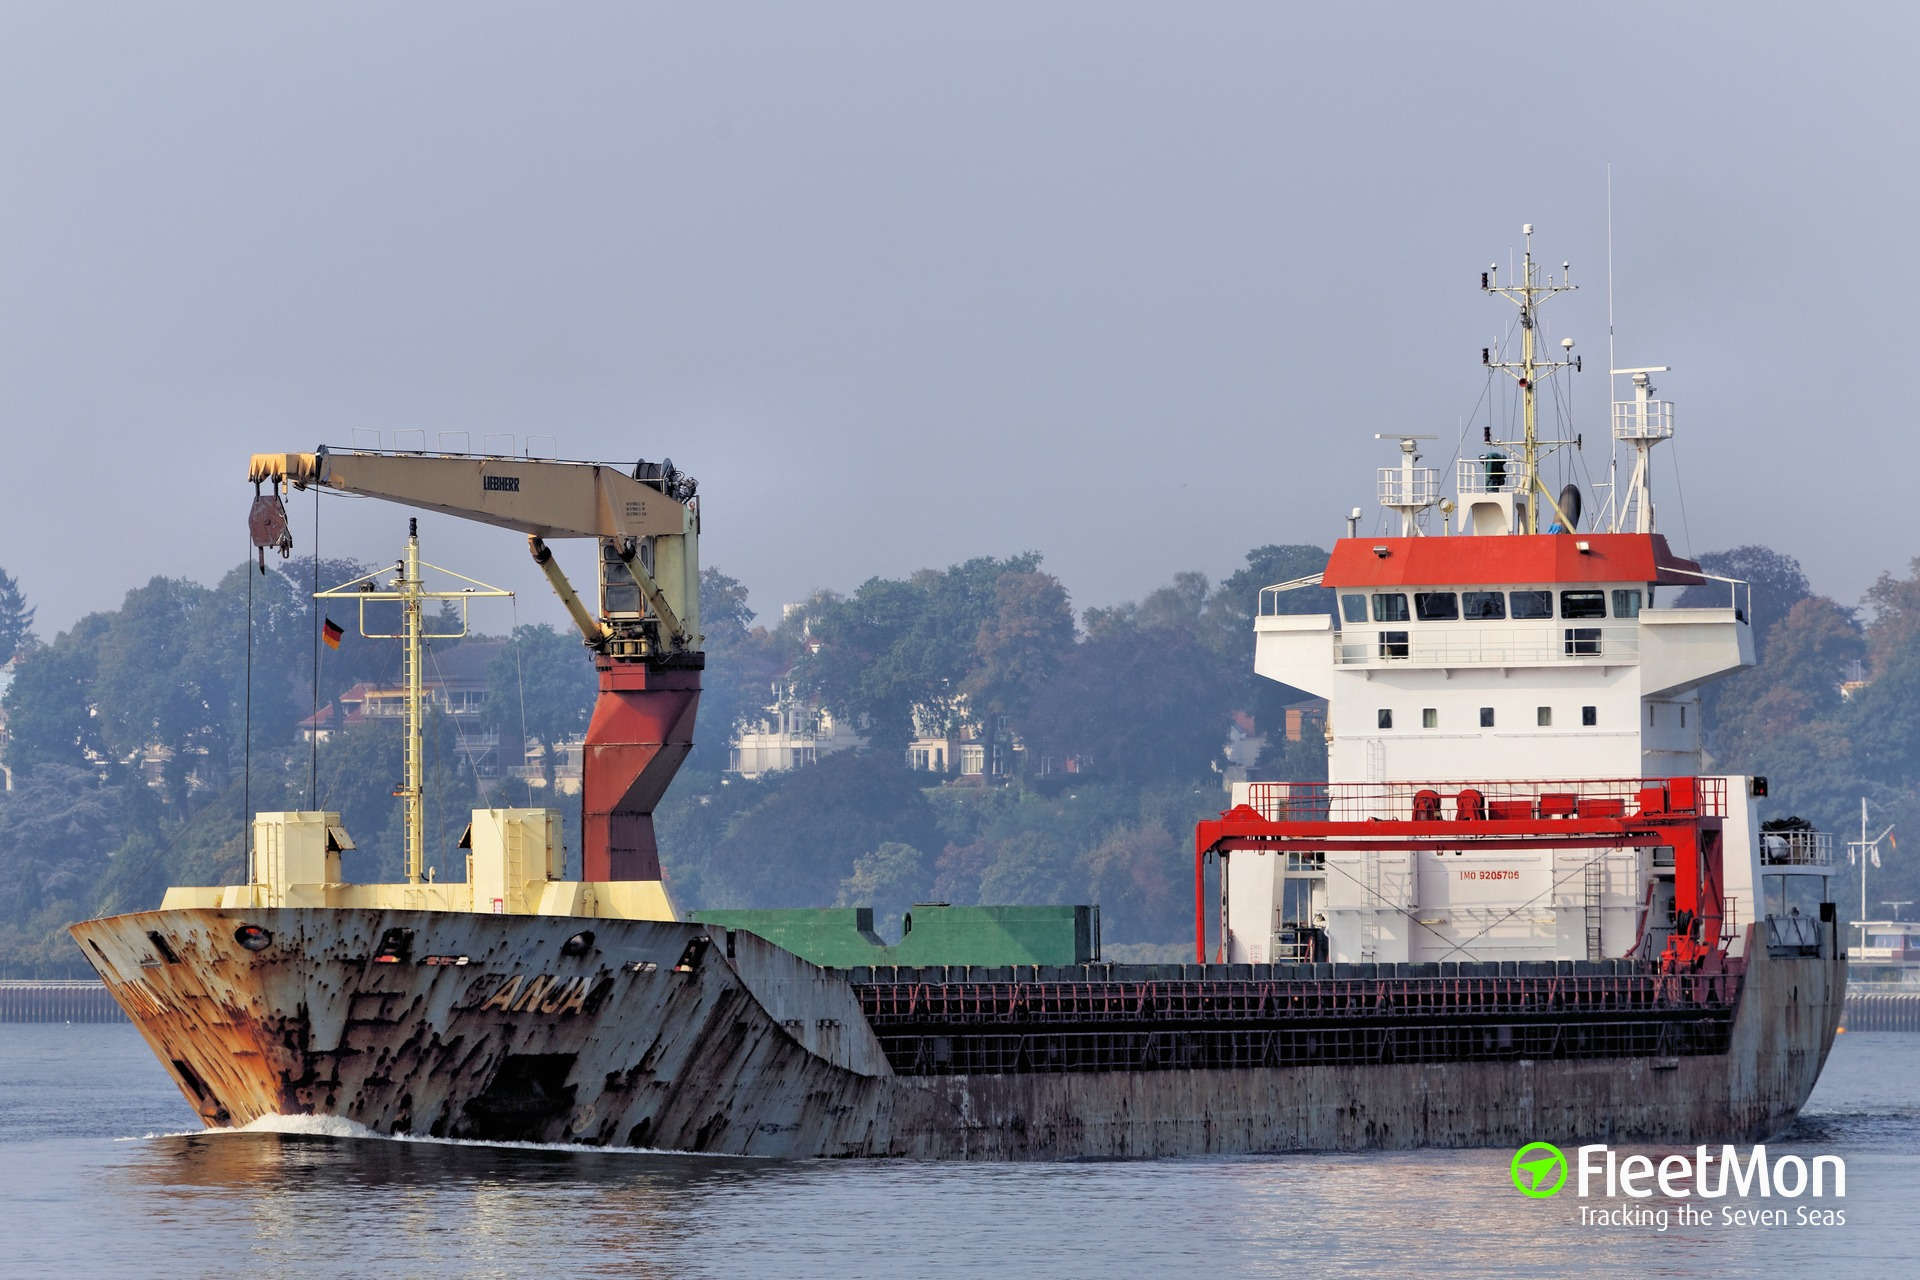 General cargo vessel Anja collided with a pier, Elbe